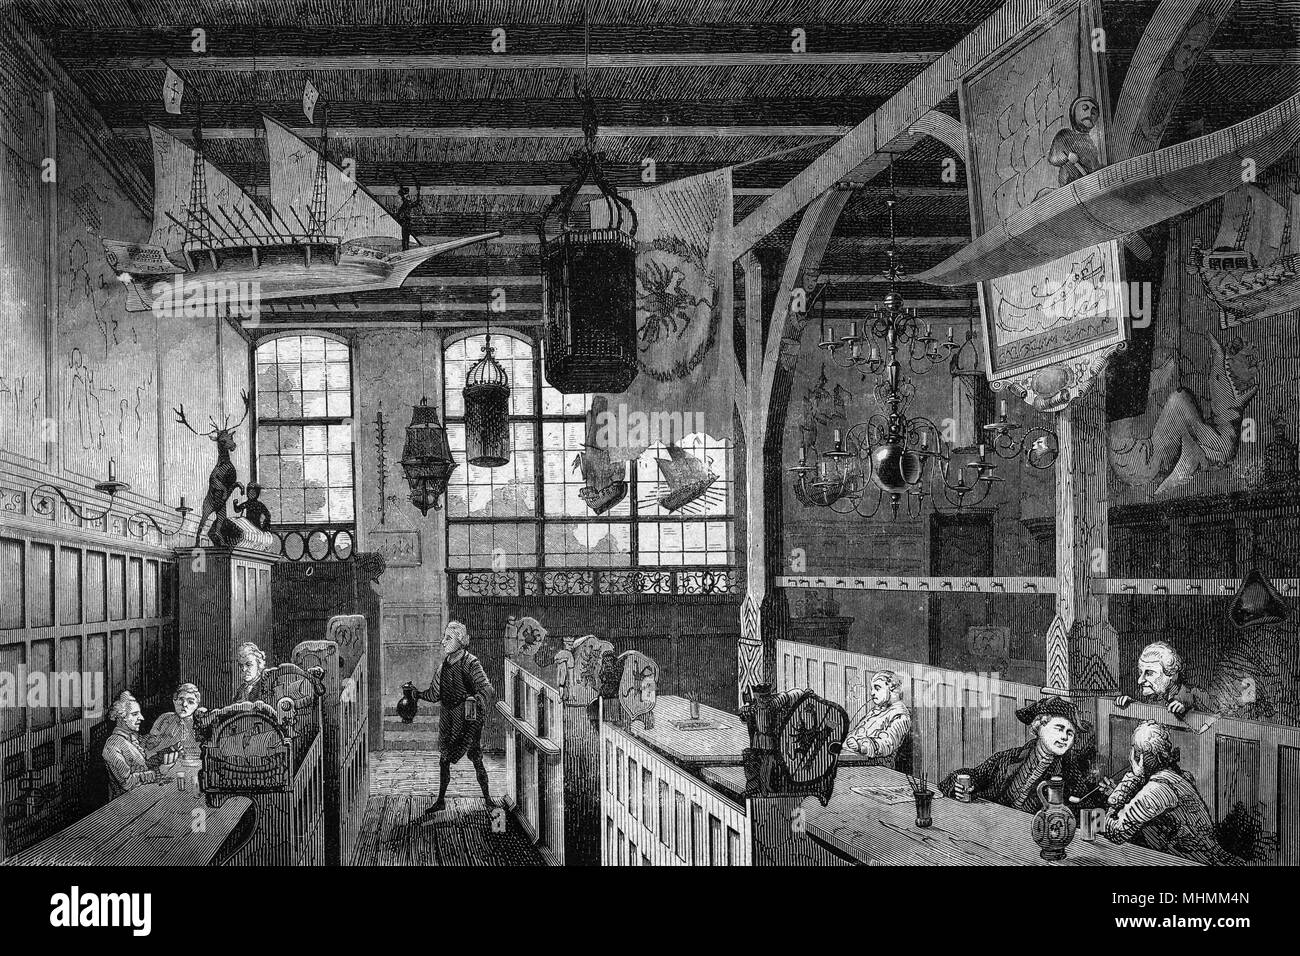 Men drink and smoke in a bierkeller in Lubeck, Germany, with an interesting range of ephemera hanging from the ceiling.      Date: 1870 - Stock Image